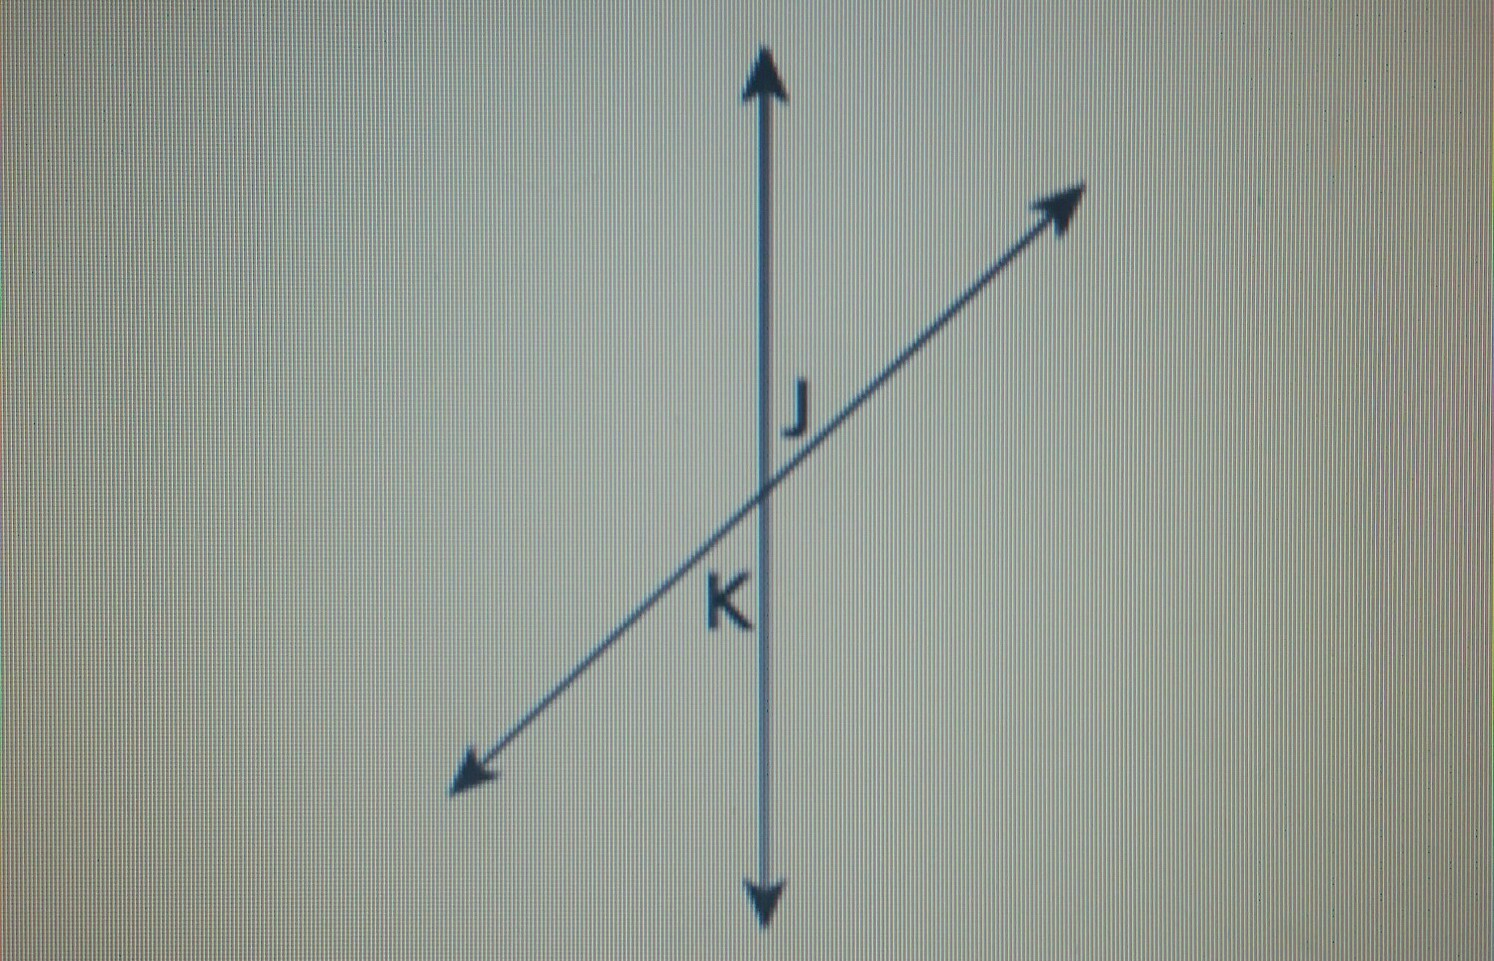 angle j and angle k are vertical angles as shown in the ...